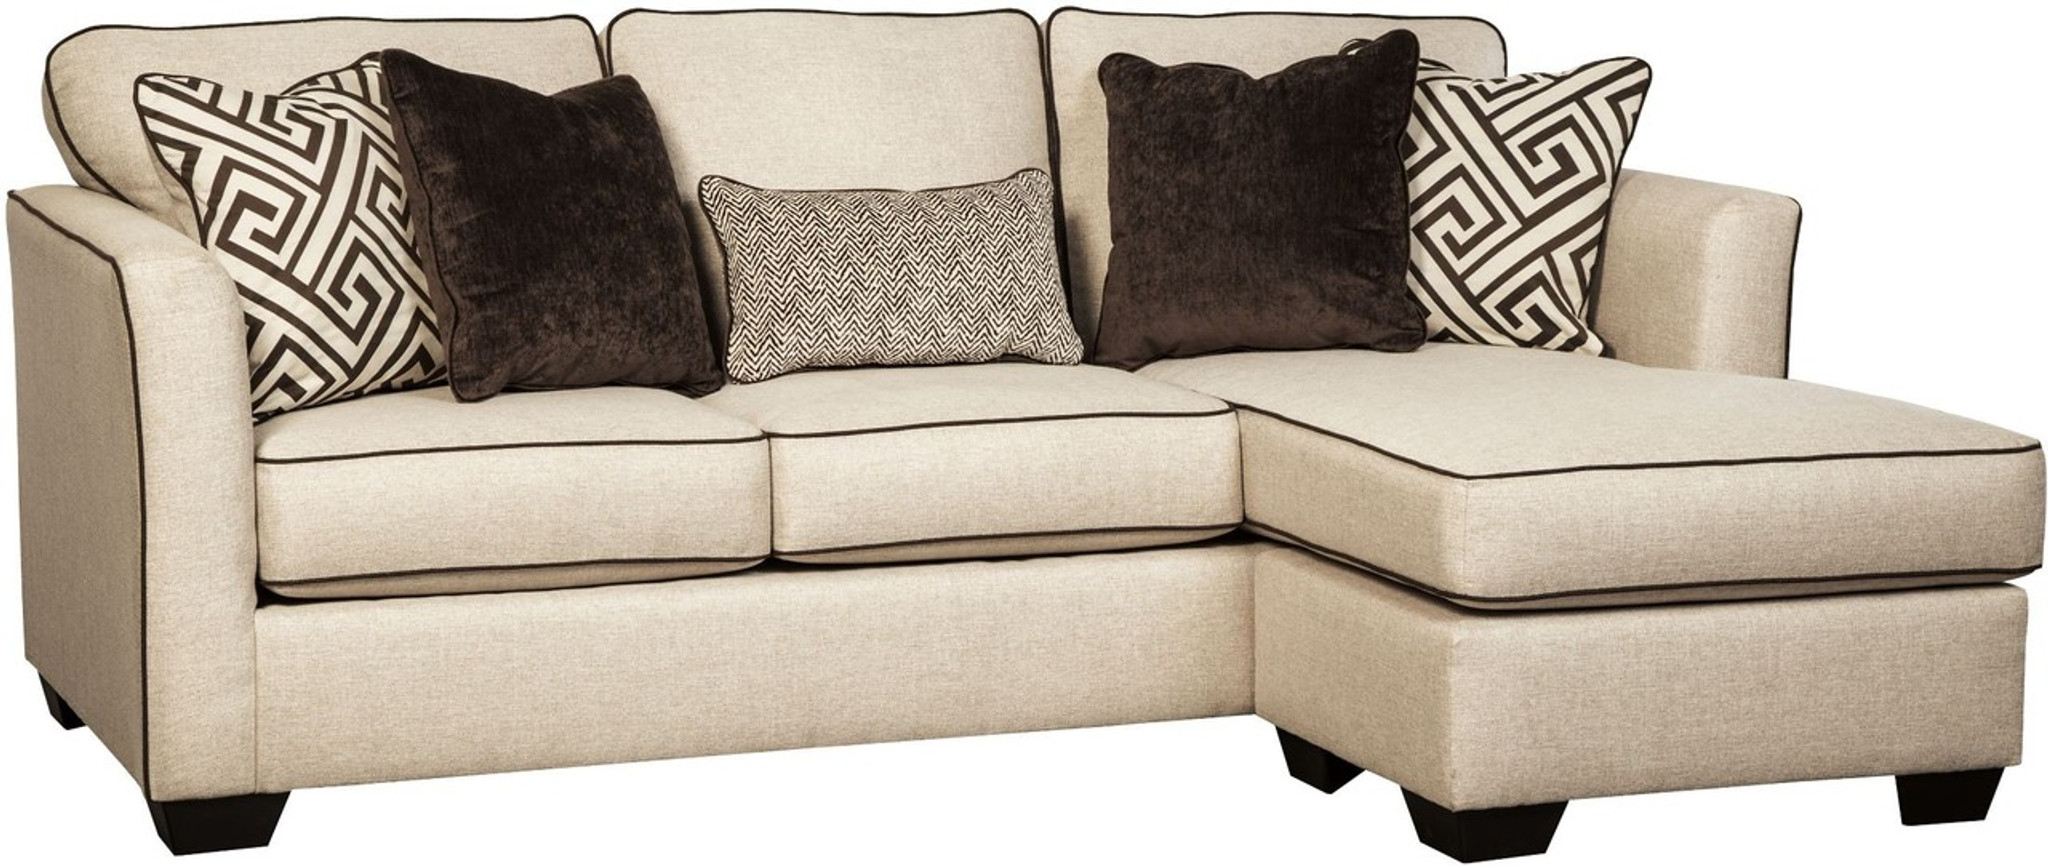 Brilliant Carlinworth Linen Collection Sofa Chaise Caraccident5 Cool Chair Designs And Ideas Caraccident5Info